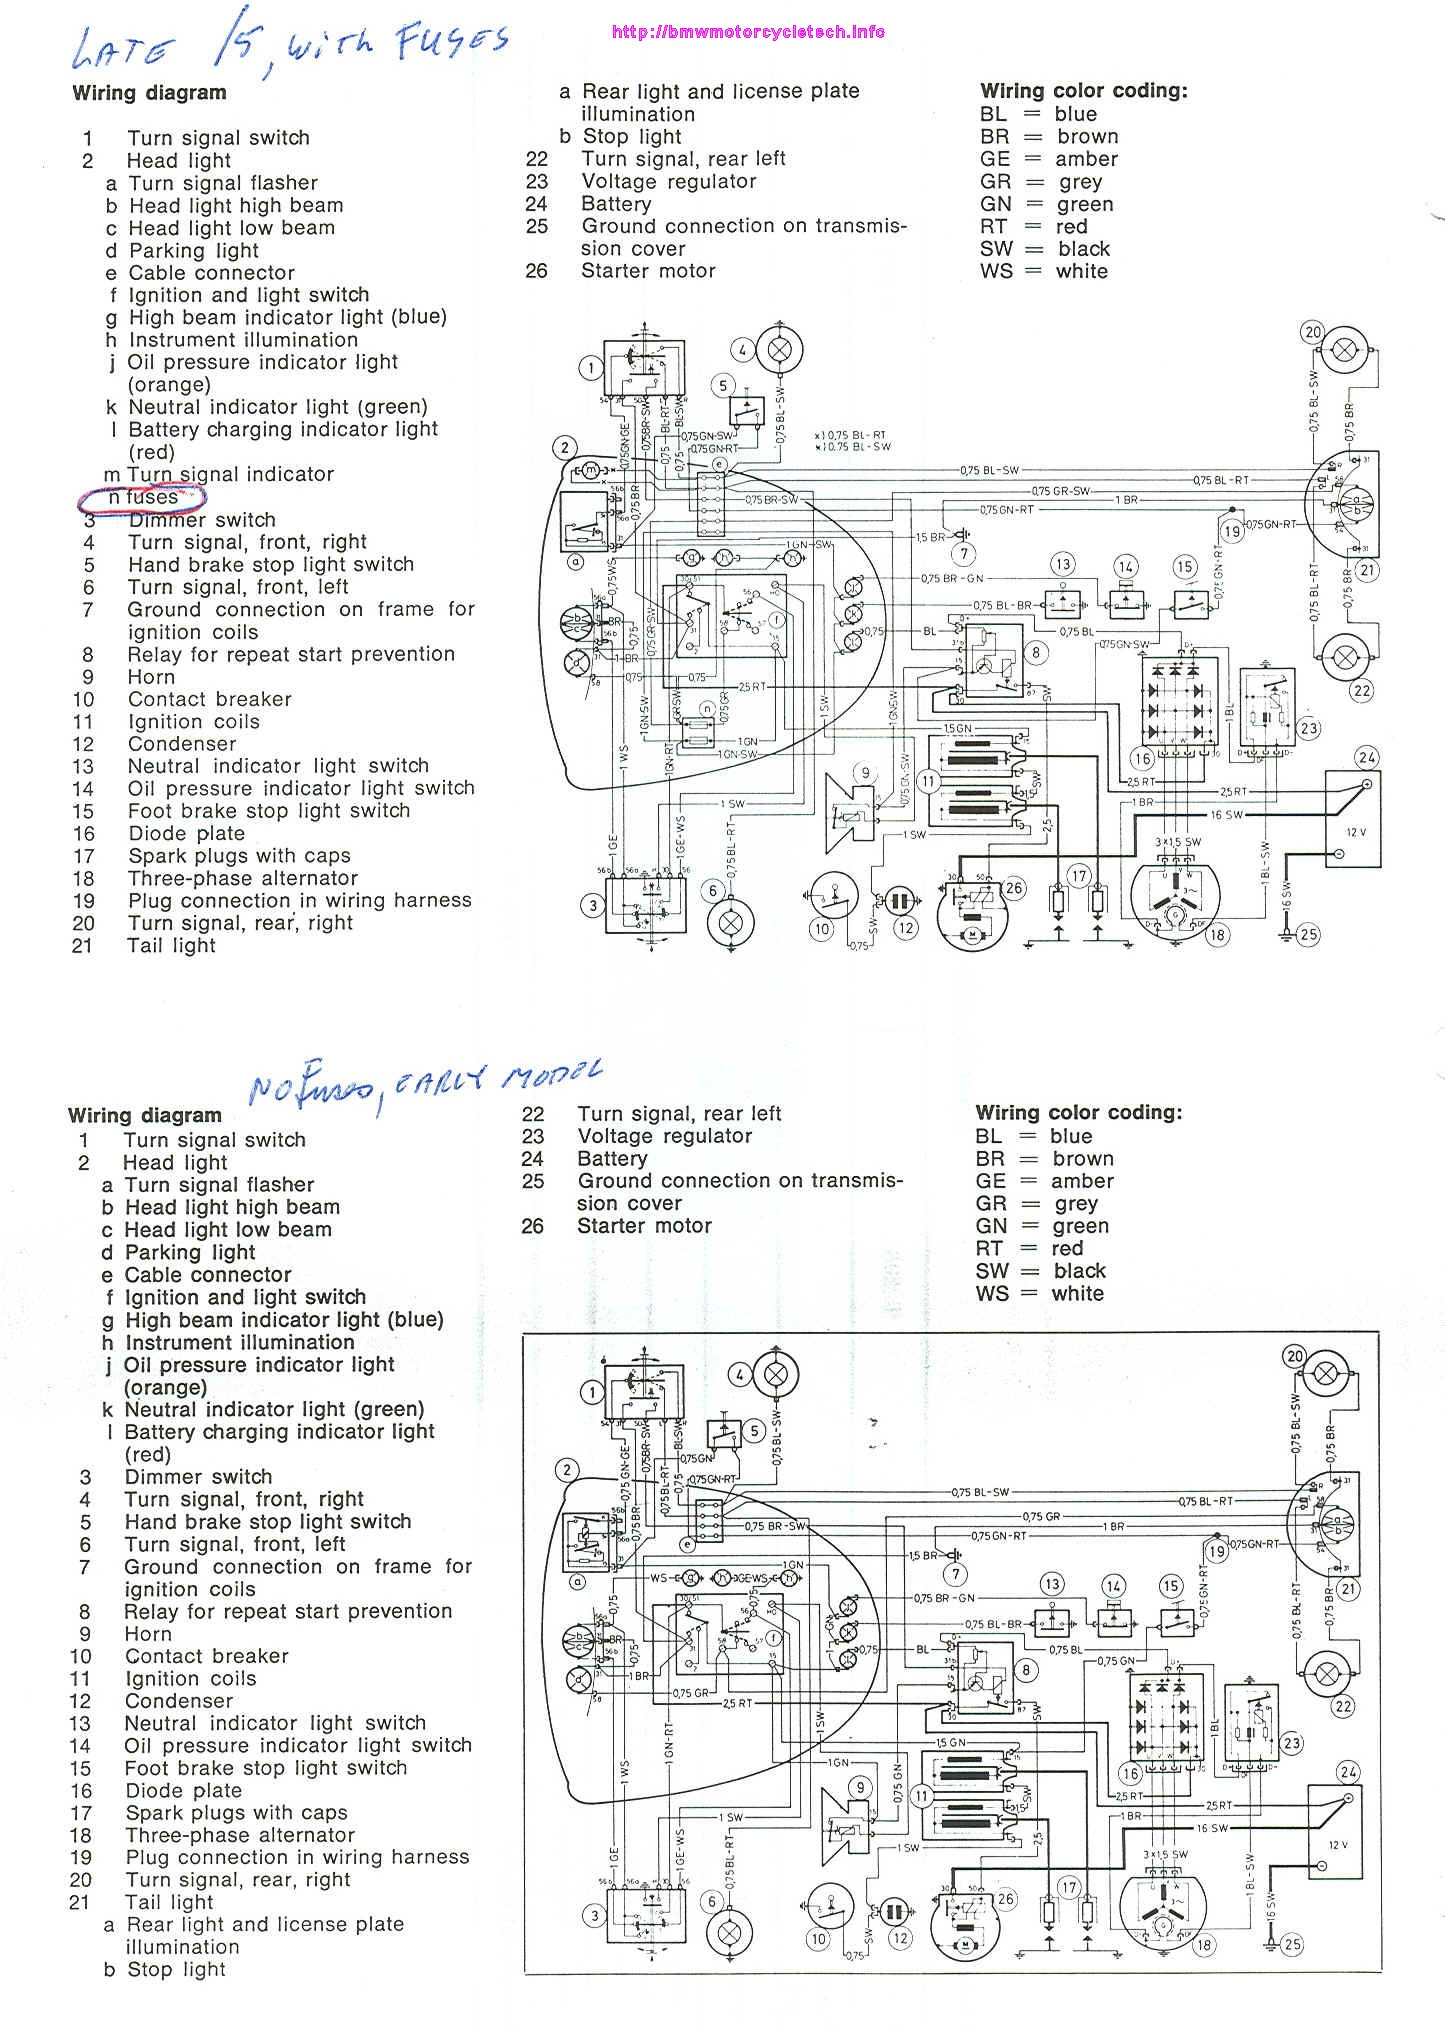 Snowbum bmw motorcycle technical articles maintenance snobum schematic diagrams for both early and late 5 early model had no fuses set your browser to expand the image as needed it will be cleanly displayed asfbconference2016